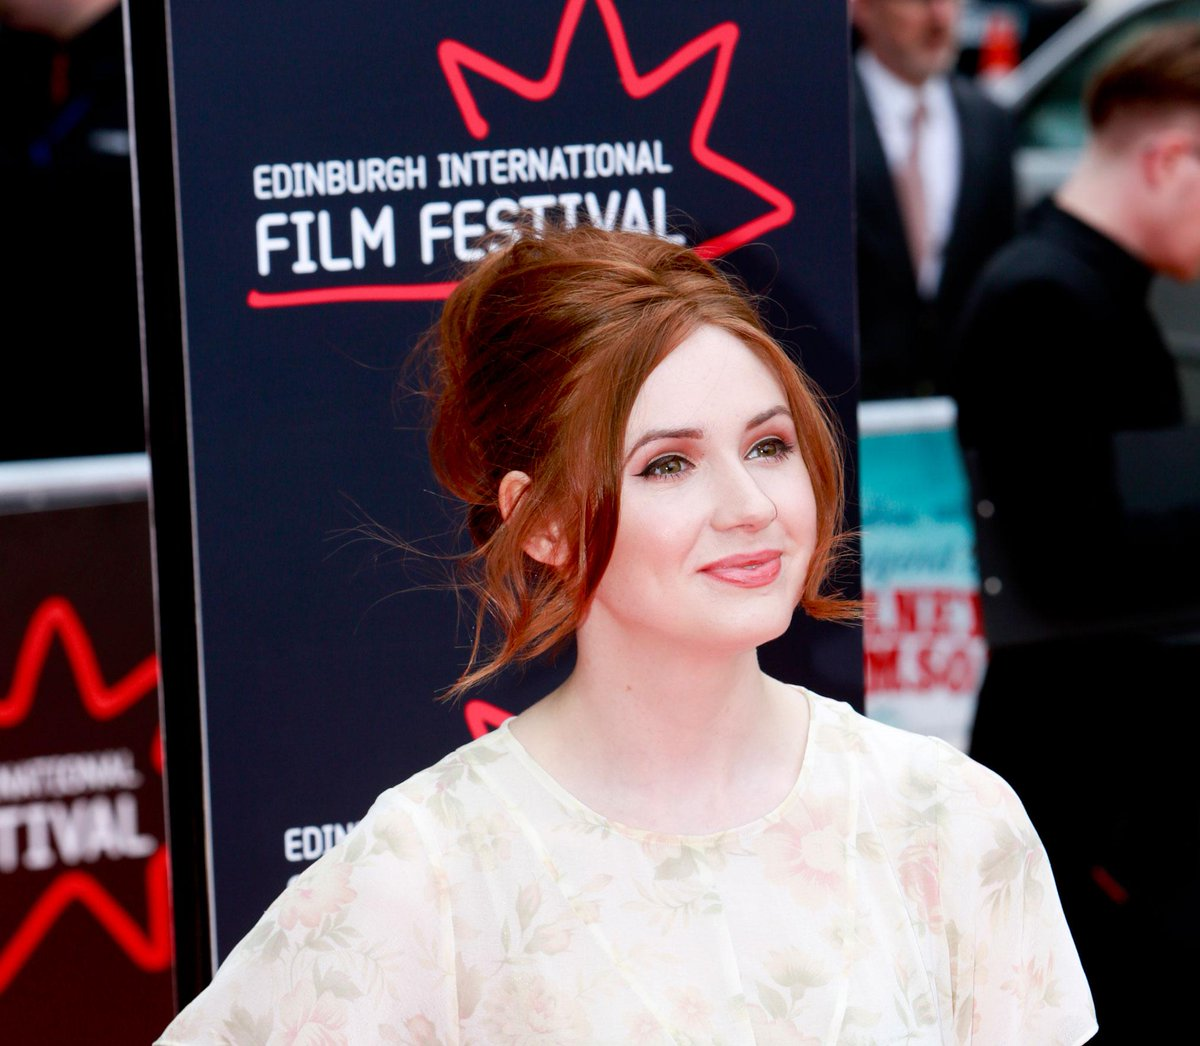 We are also thrilled to announce two new EIFF Honorary Patrons, @karengillan and @MrJamesCosmo http://t.co/PXnis4unHx http://t.co/c5sLlF3wjm